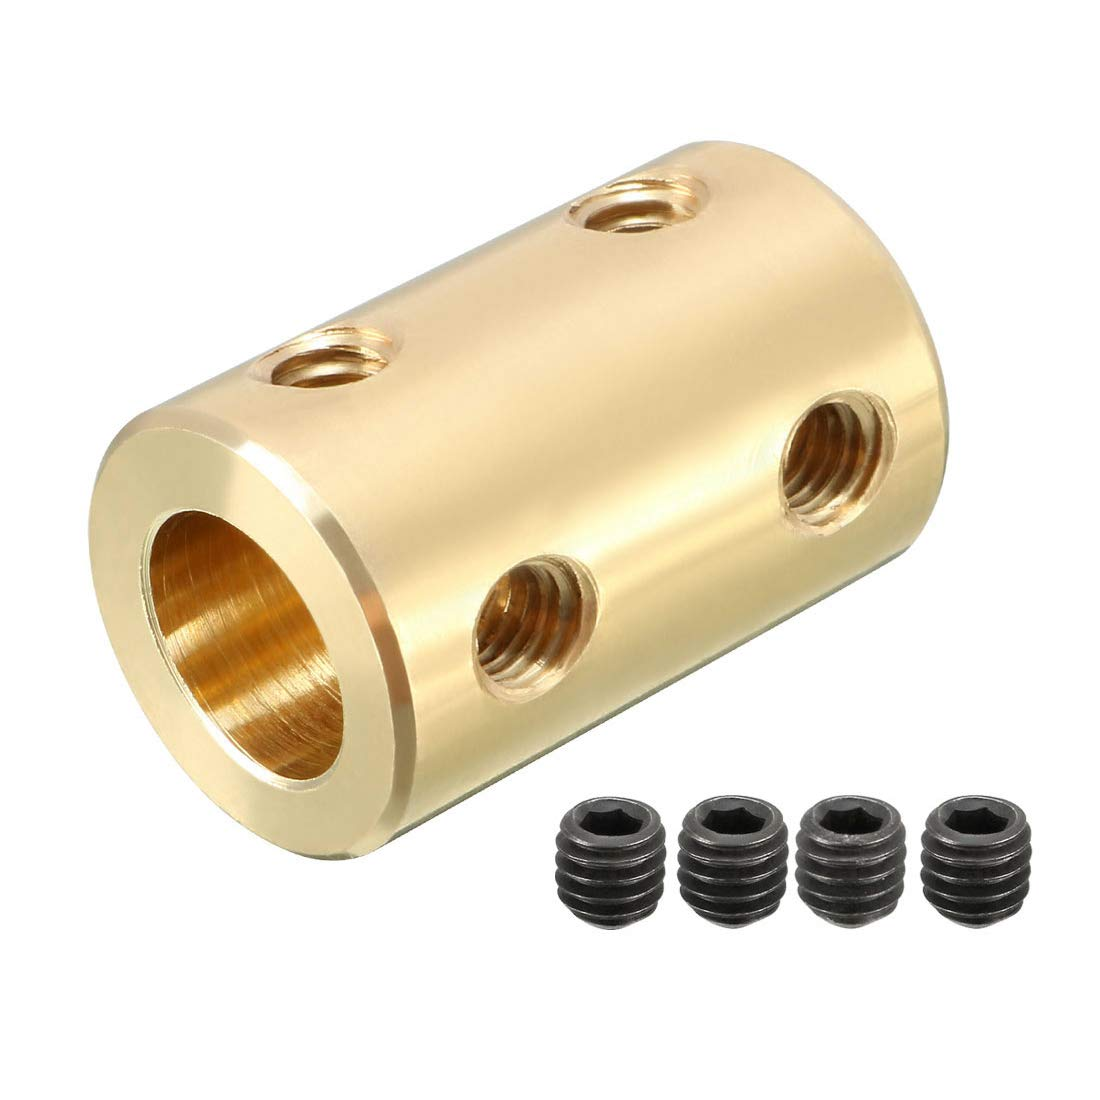 uxcell Shaft Coupling 8mm to 8mm Bore L22xD14 Robot Motor Wheel Rigid Coupler Connector